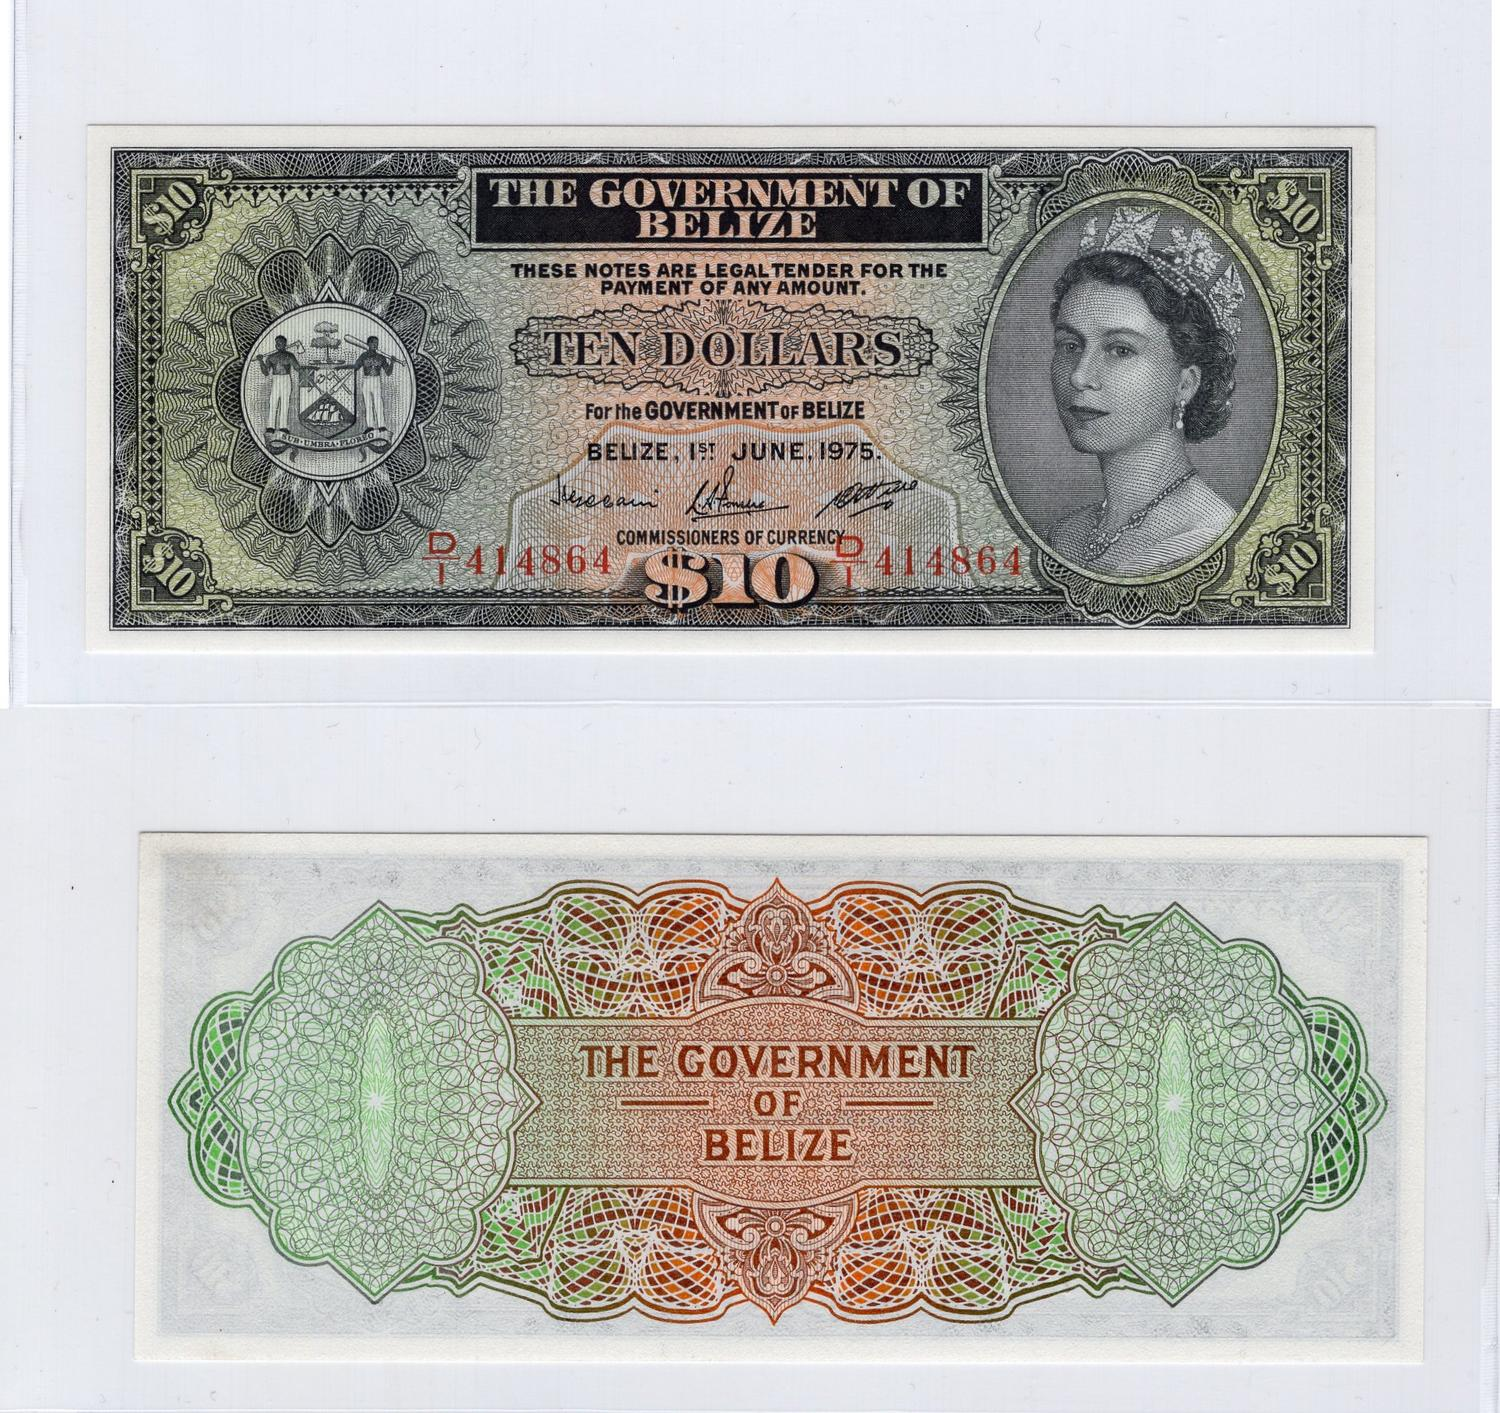 Belize 10 Dollars 1975 Unc P36b Serial Number D 1 414864 Queen Elizabeth Ii Portrait 1000 1500 Usd